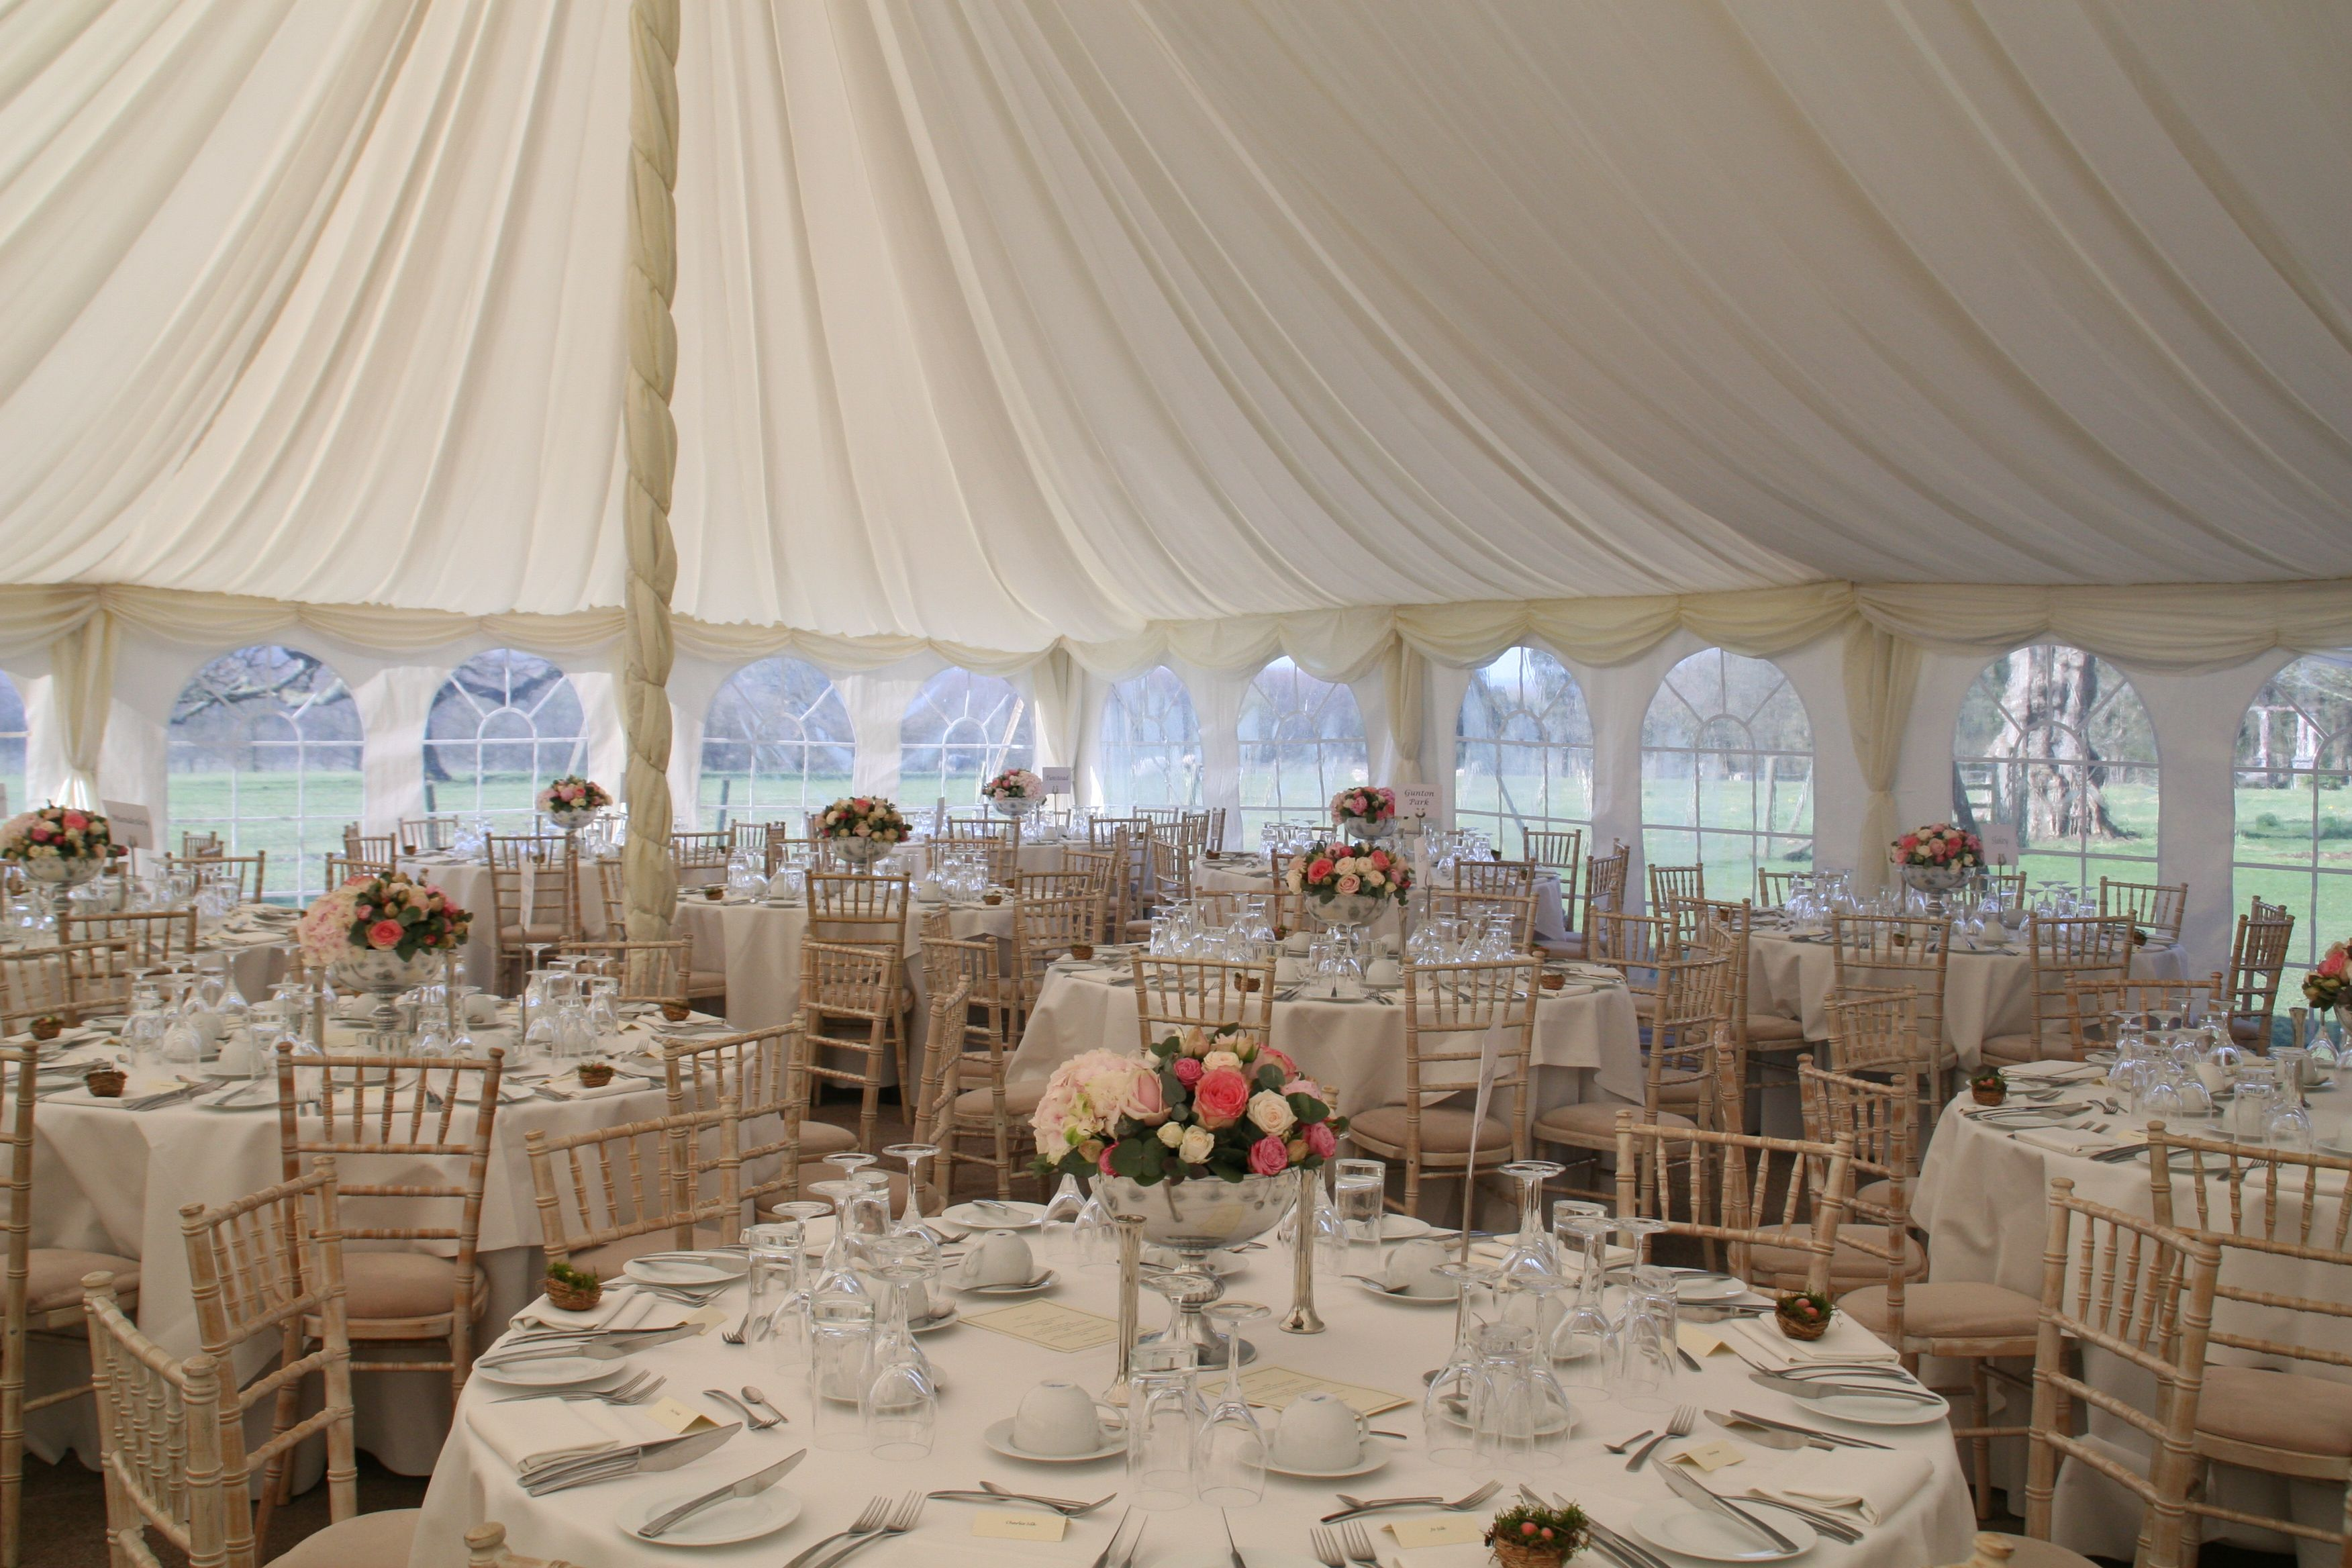 A quintessentially english traditional marquee wedding alresford marquees specialises in marquee hire wedding marquees party marquees and corporate marquee hire across hampshire surrey sussex berkshire junglespirit Gallery